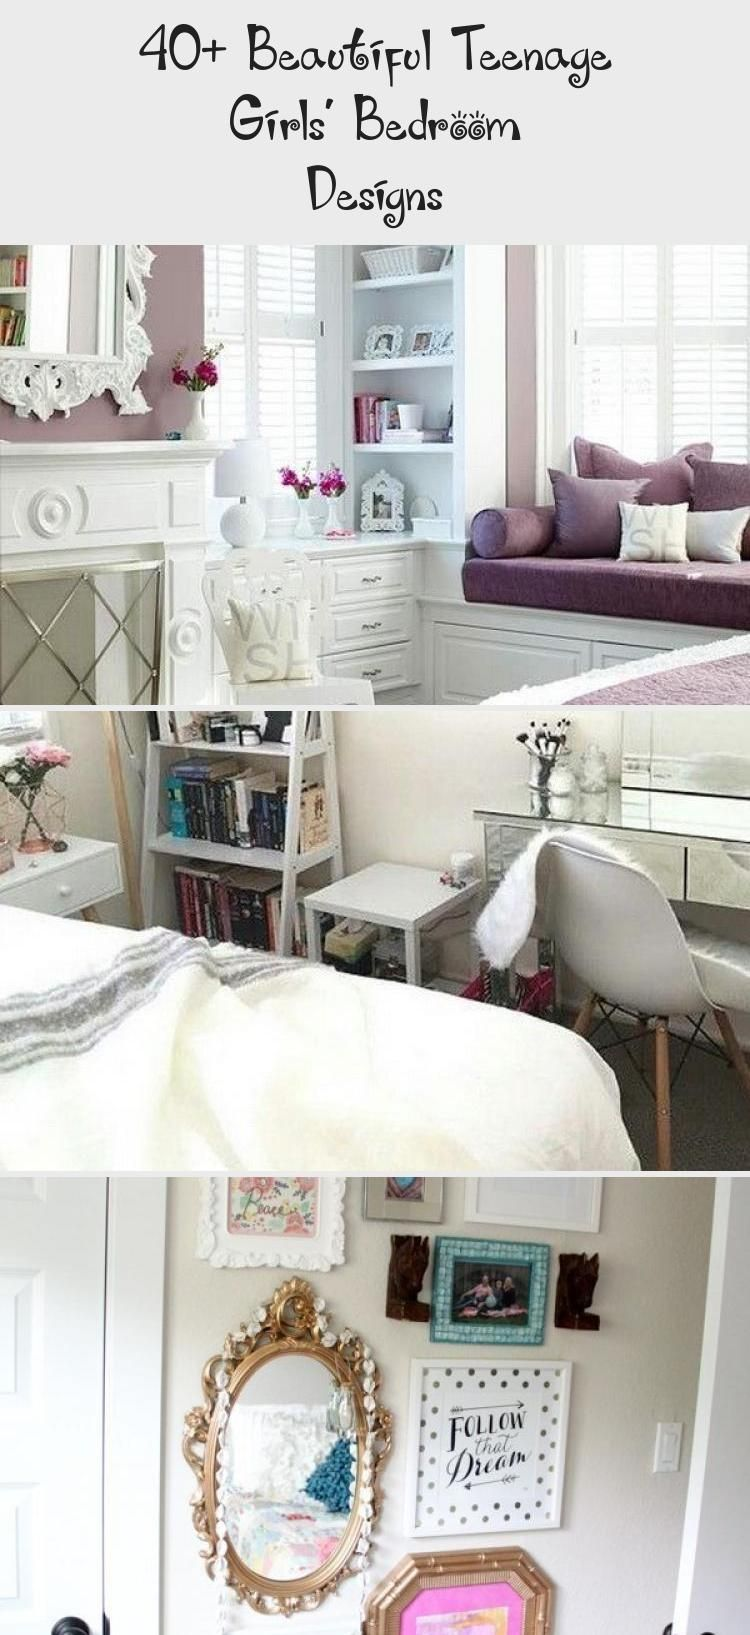 40+ Beautiful Teenage Girls' Bedroom Designs #teenagegirlbedrooms